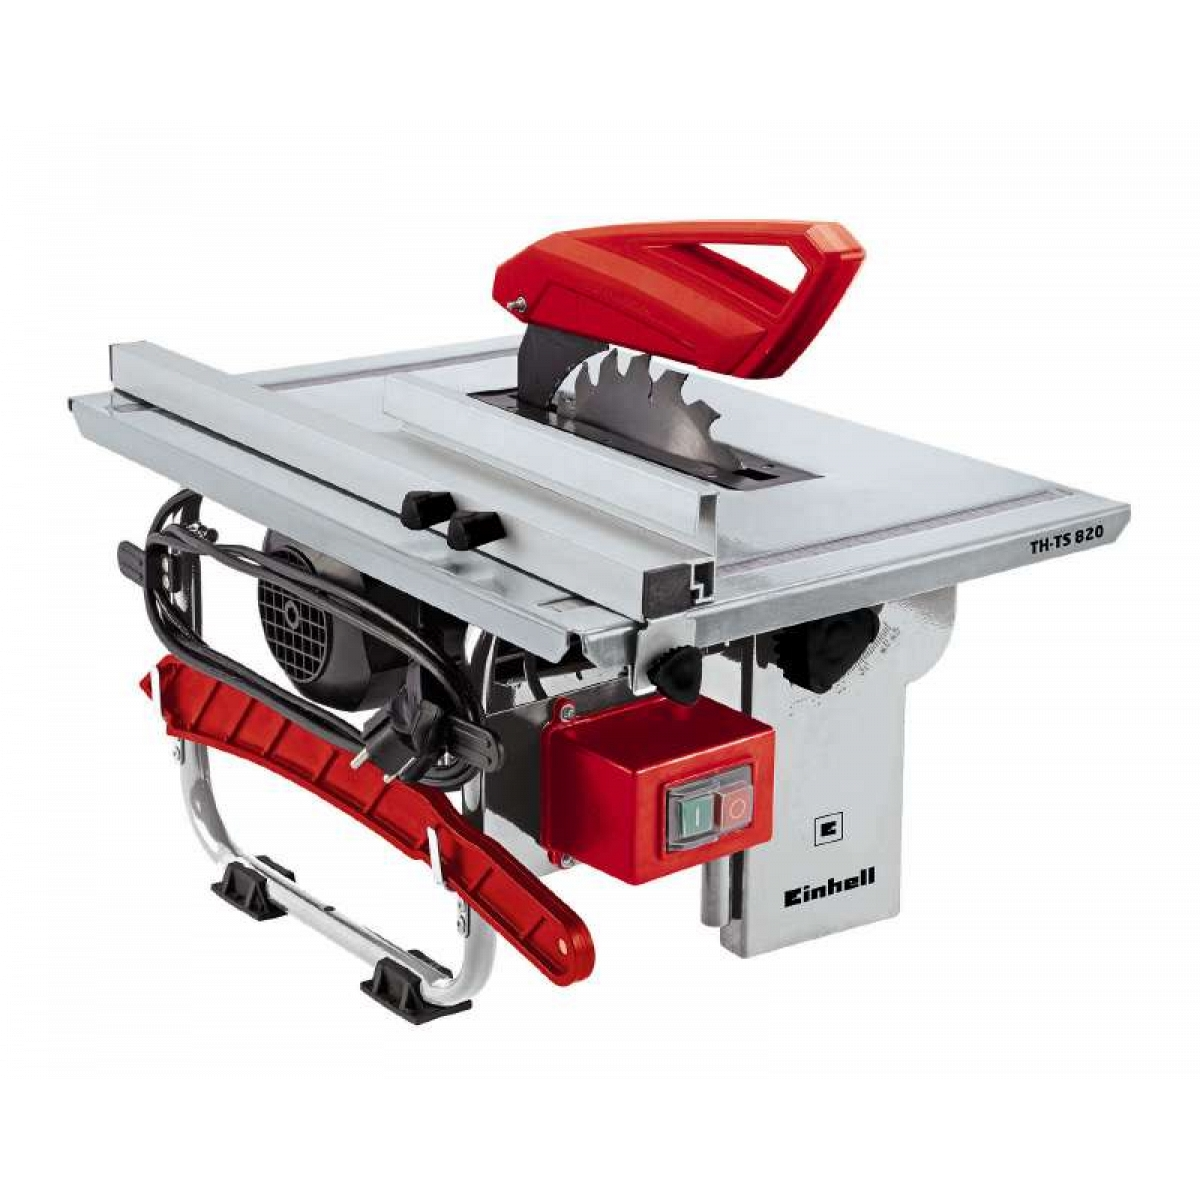 table saw with circular blade 800 w einhell tc ts 820. Black Bedroom Furniture Sets. Home Design Ideas